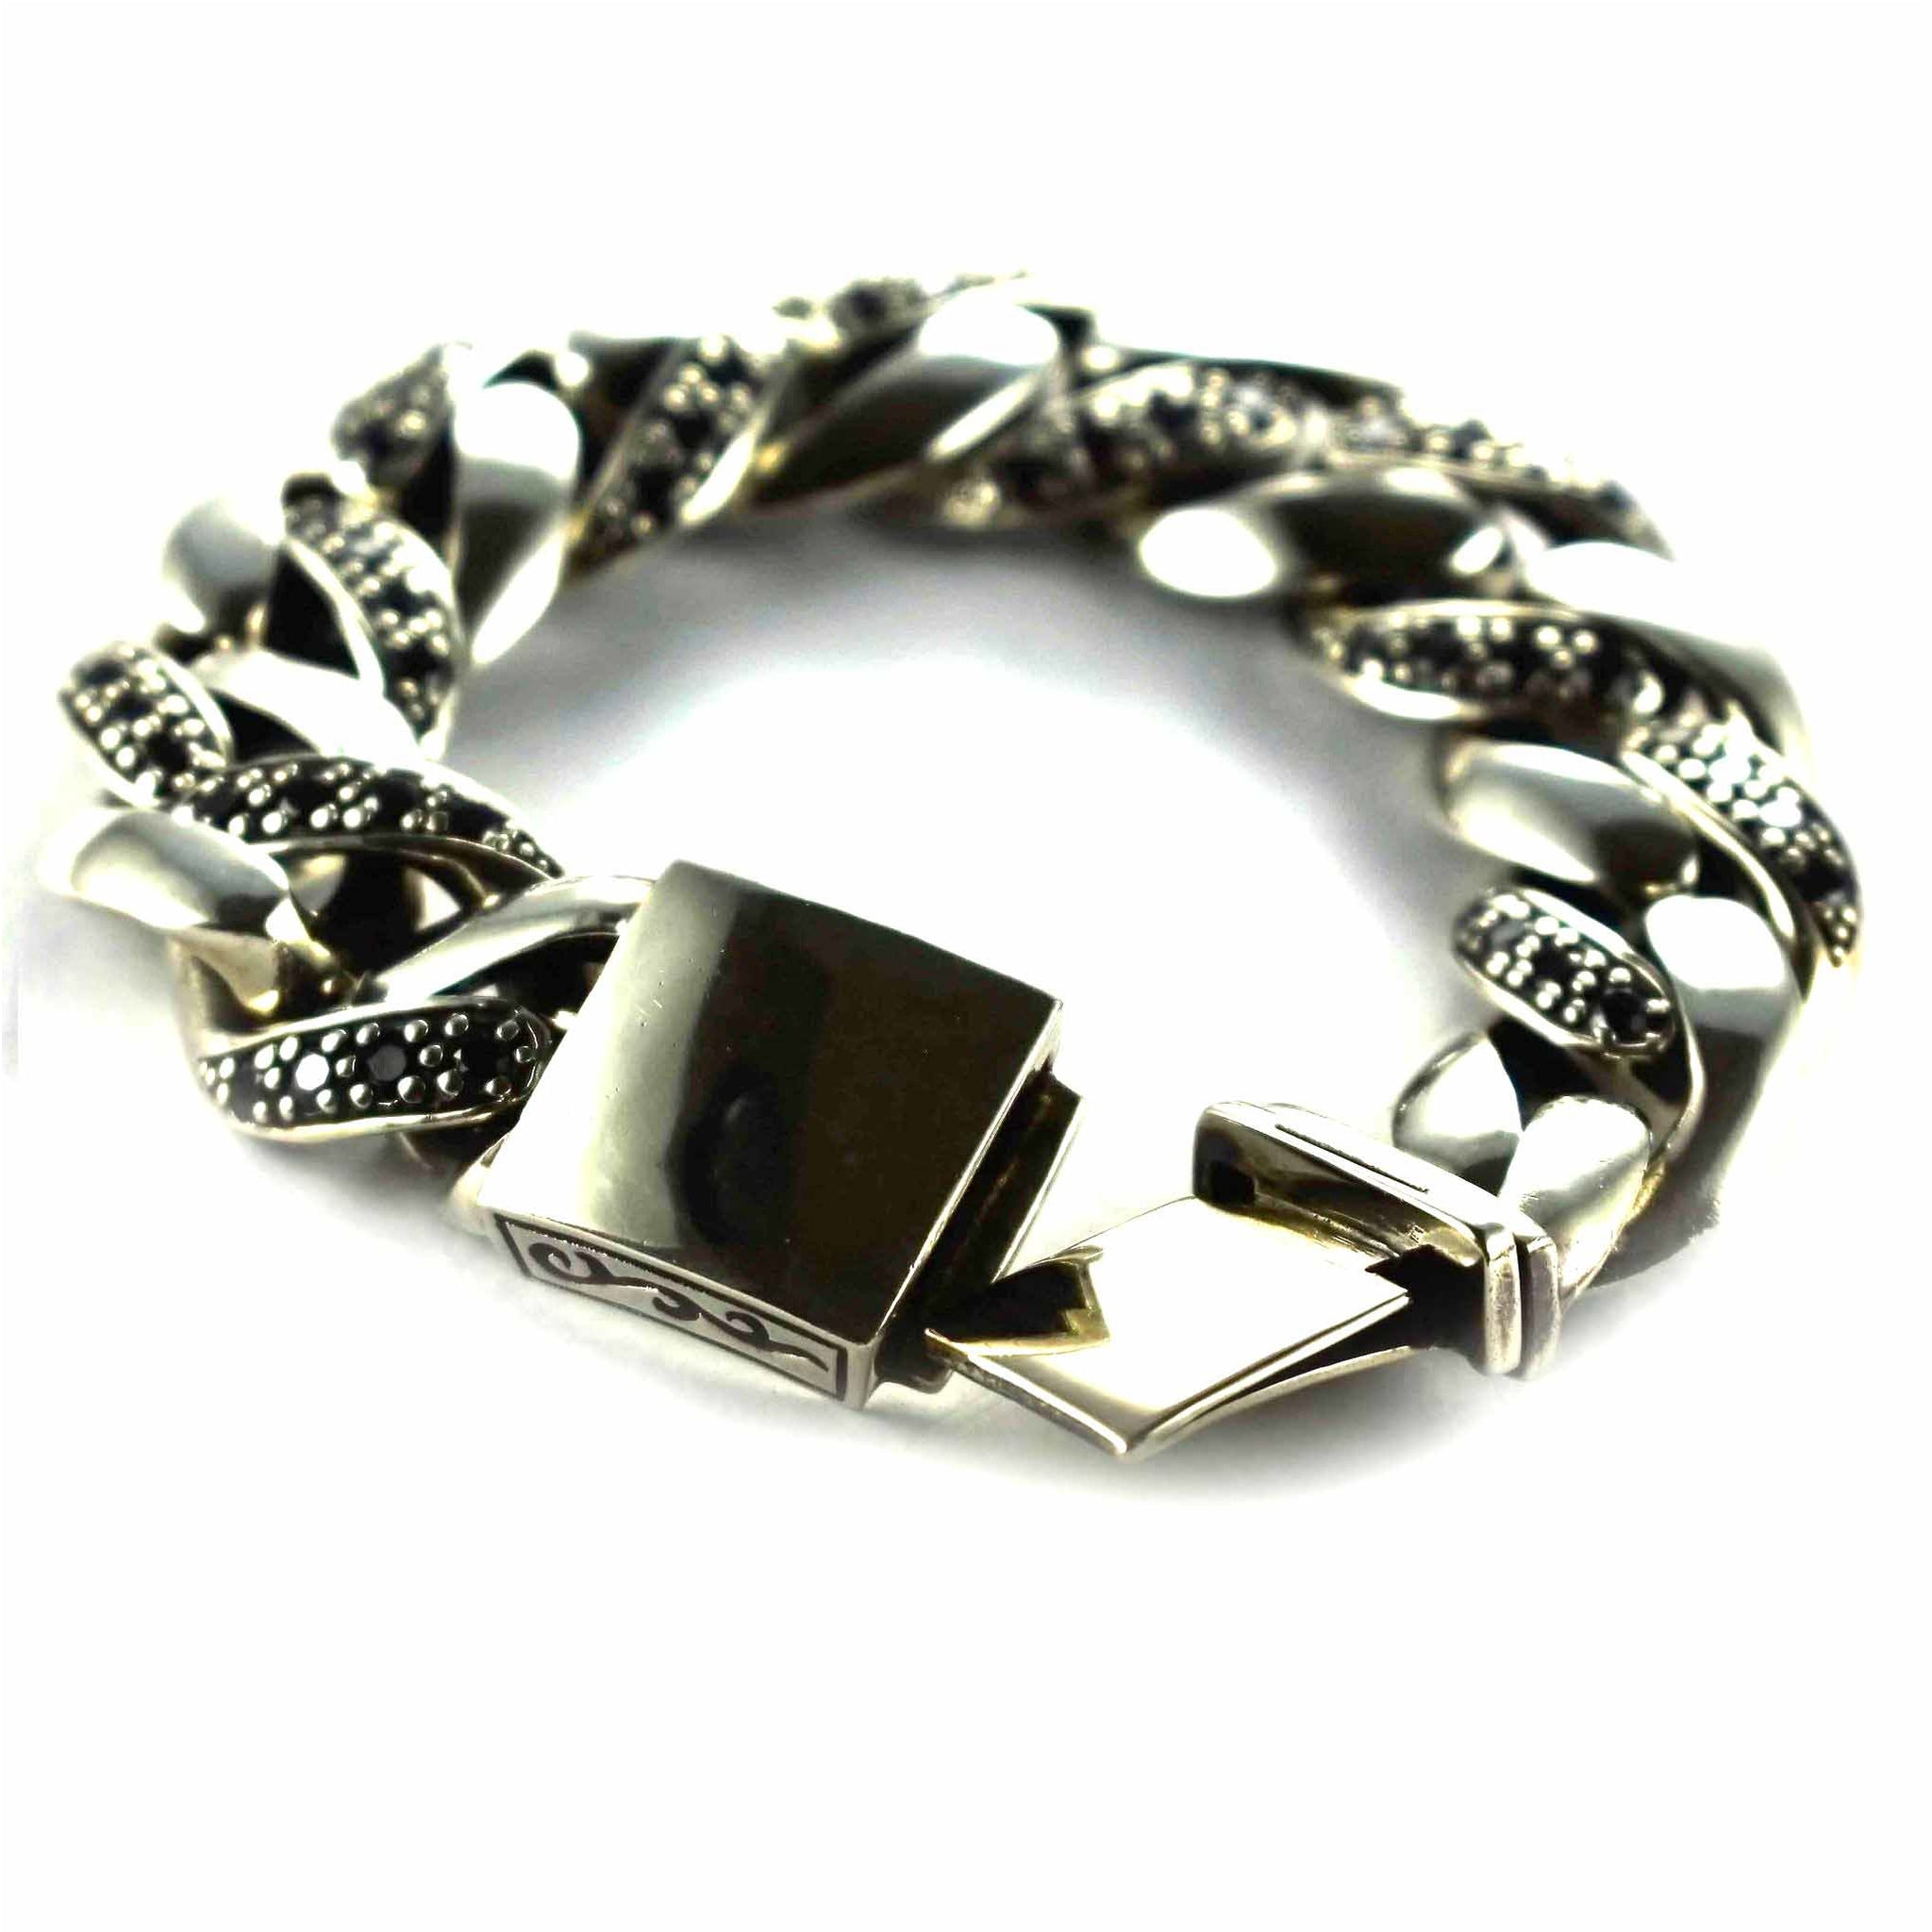 silver sale pihka in sustainable sample small bracelet lovia product